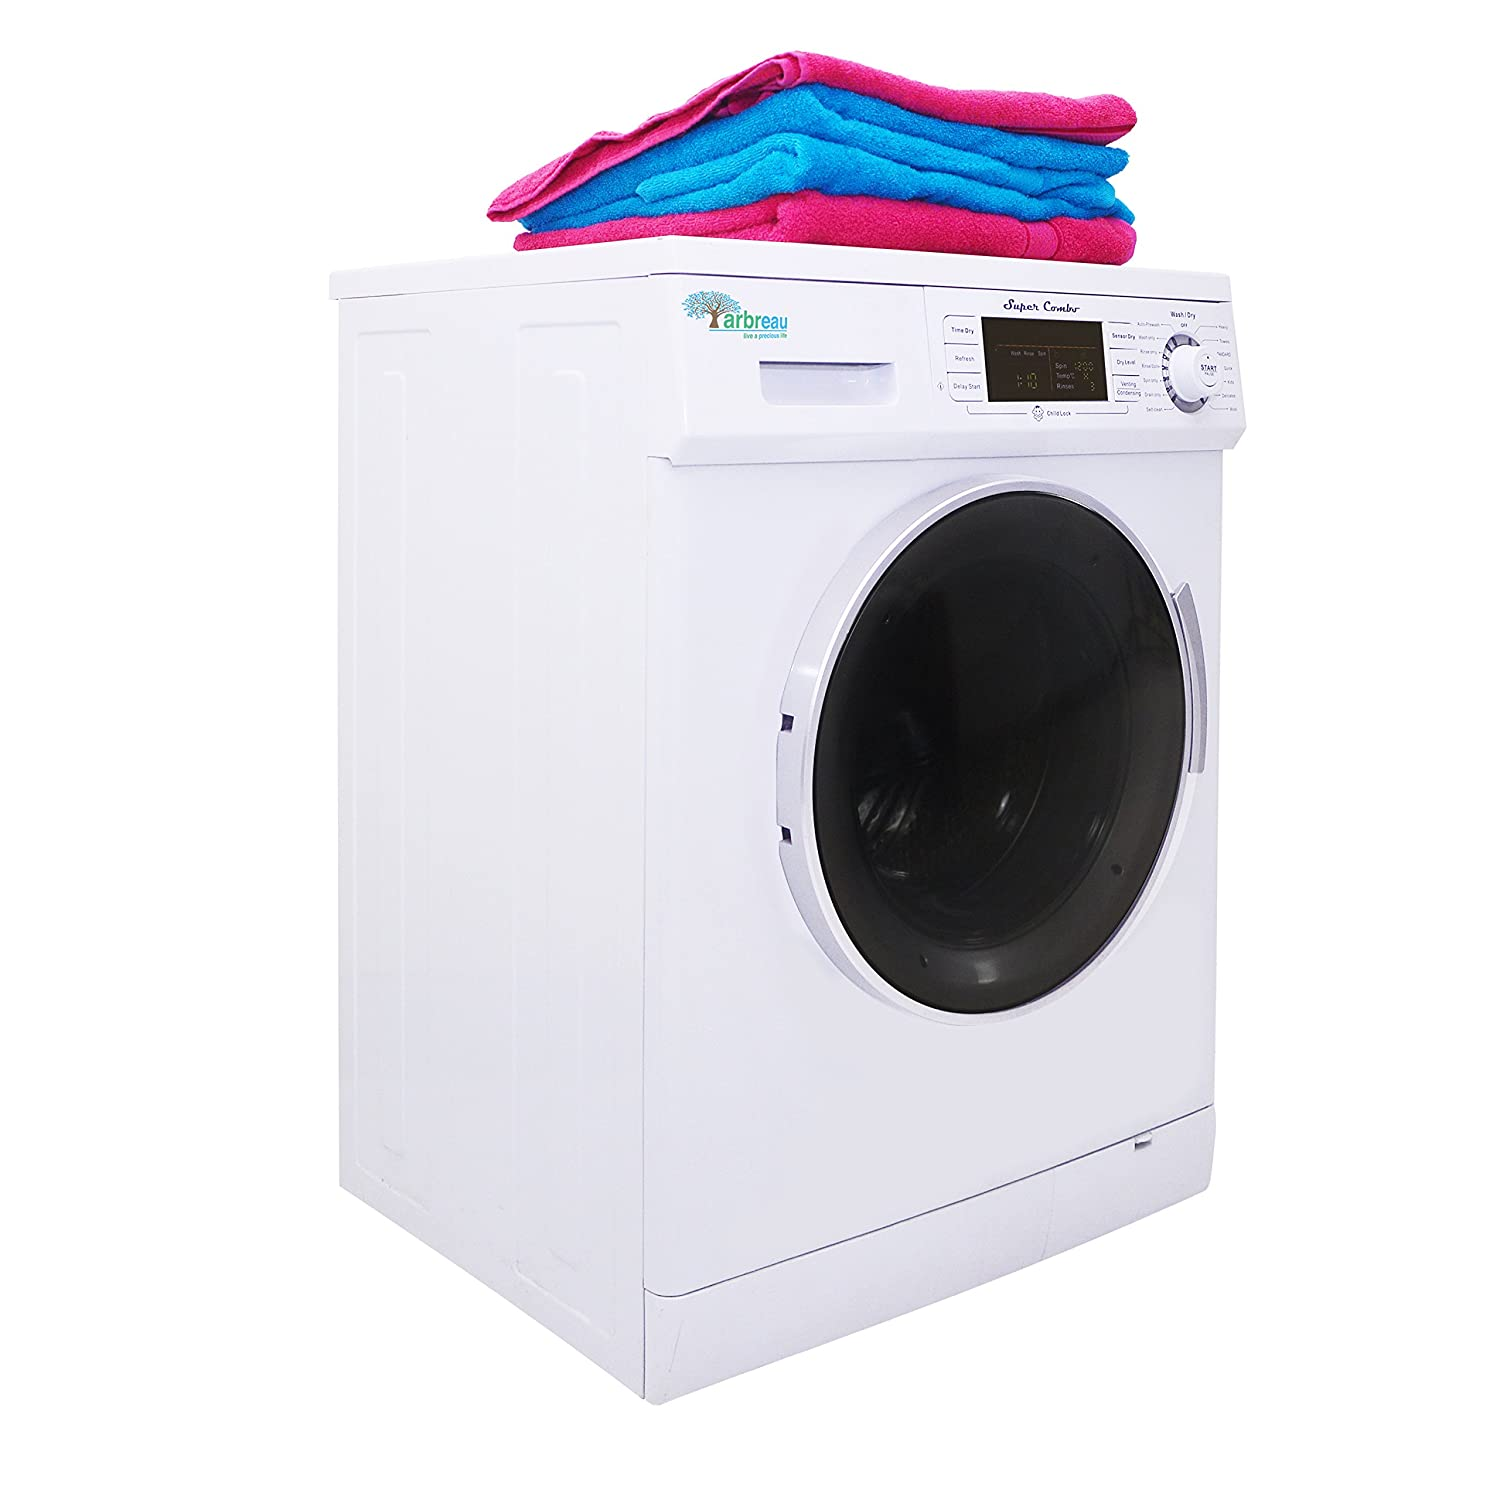 arbreau compact new combo washerdryer aw4400 cv white with drying 16 cuft rpm steel drum wash cycles 7dry cycles 11rinse